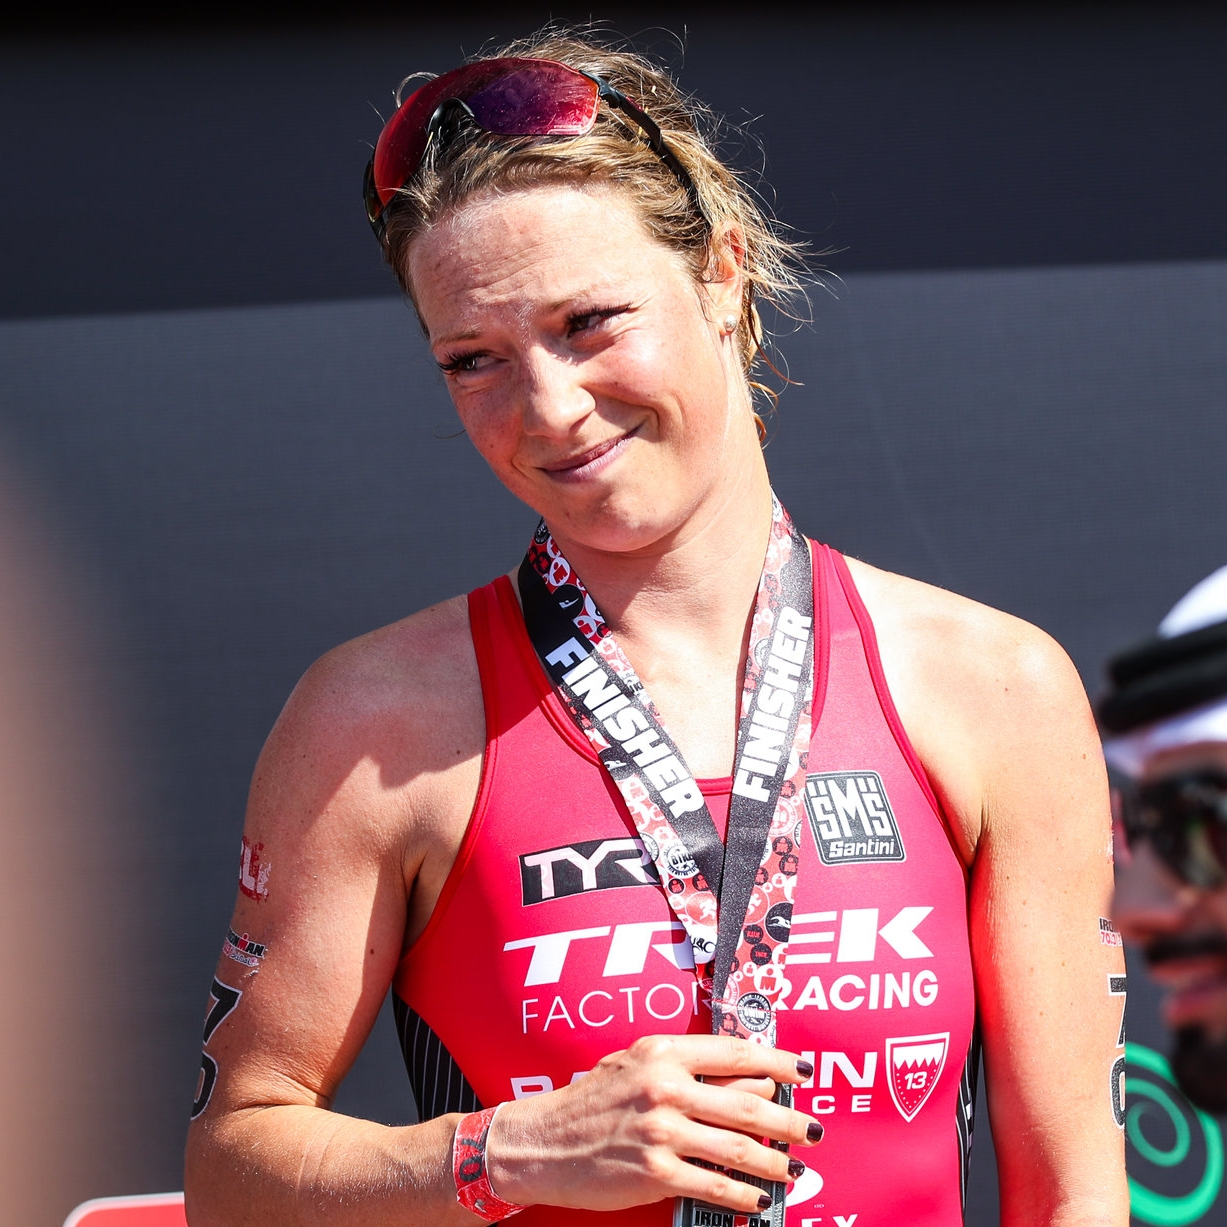 HOLLY LAWRENCE   Ironman 70.3 World Champion